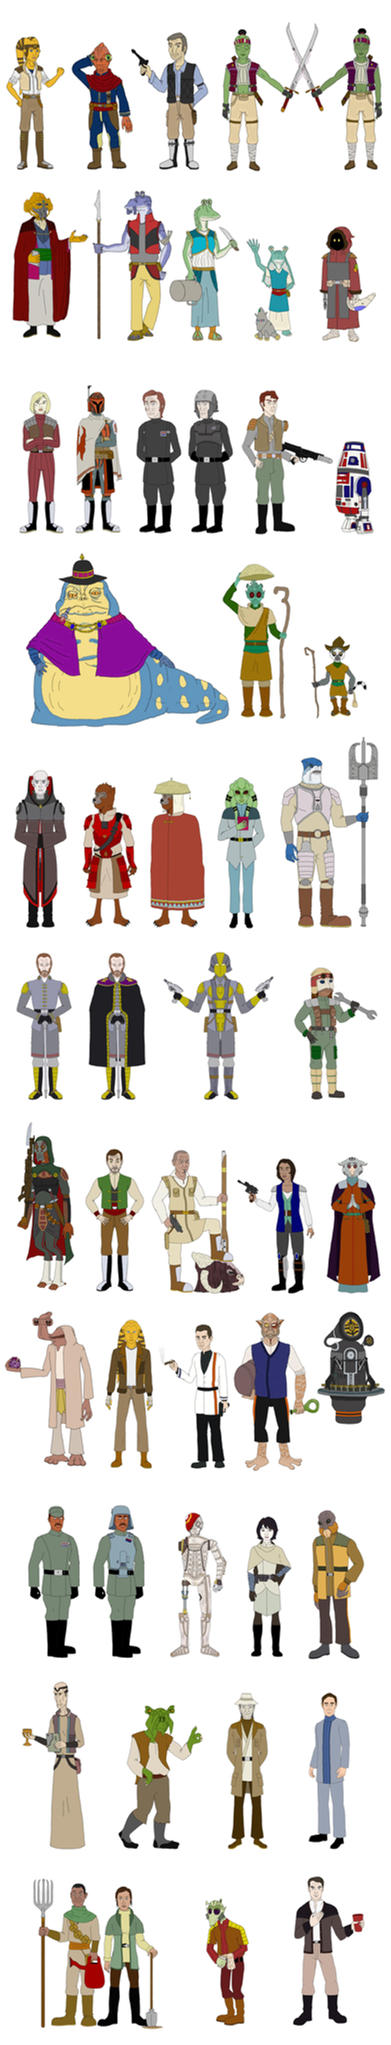 Star Wars: Edge of the Empire Campaign NPCs by R-Zion